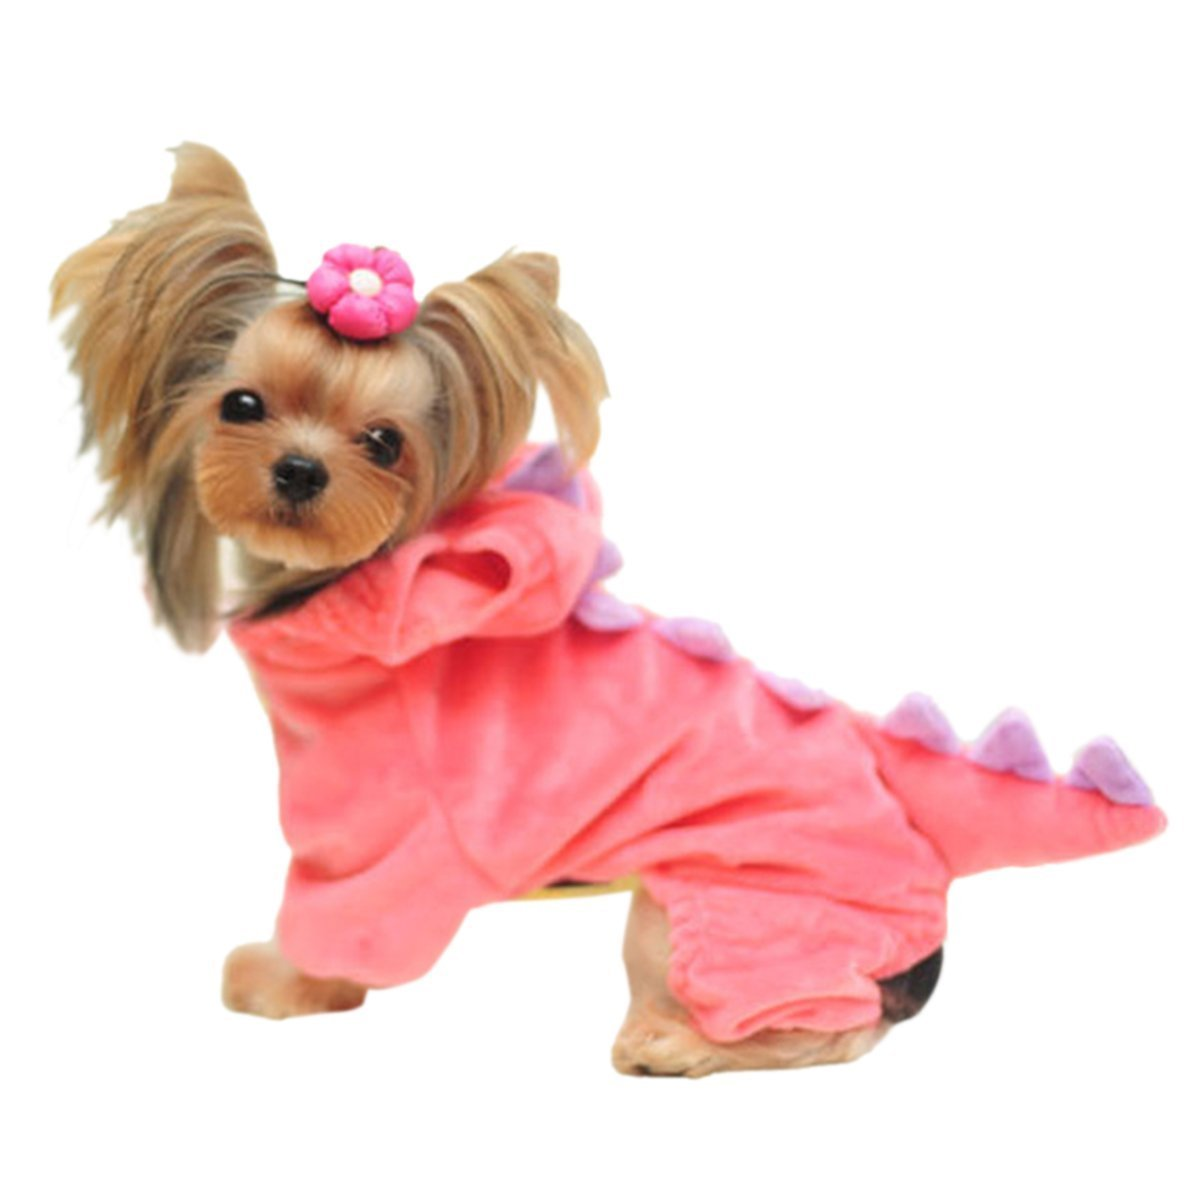 Dinosaur Onesie Costume for Cats or Dogs - Perfect for Parties or Halloween (S, Pink)